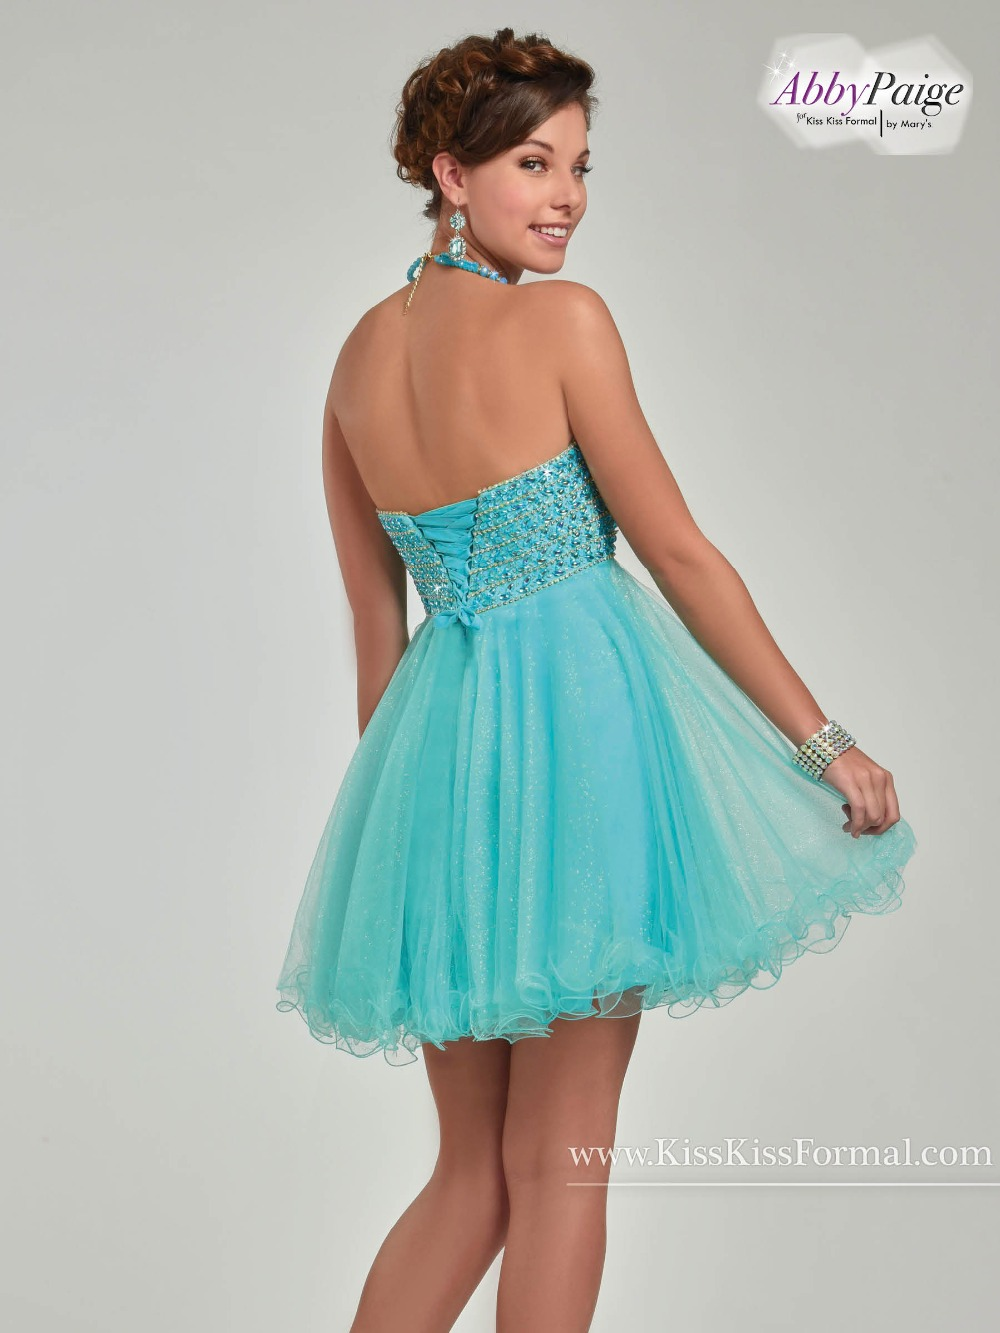 Fancy Tutu Dress For Prom Vignette - All Wedding Dresses ...